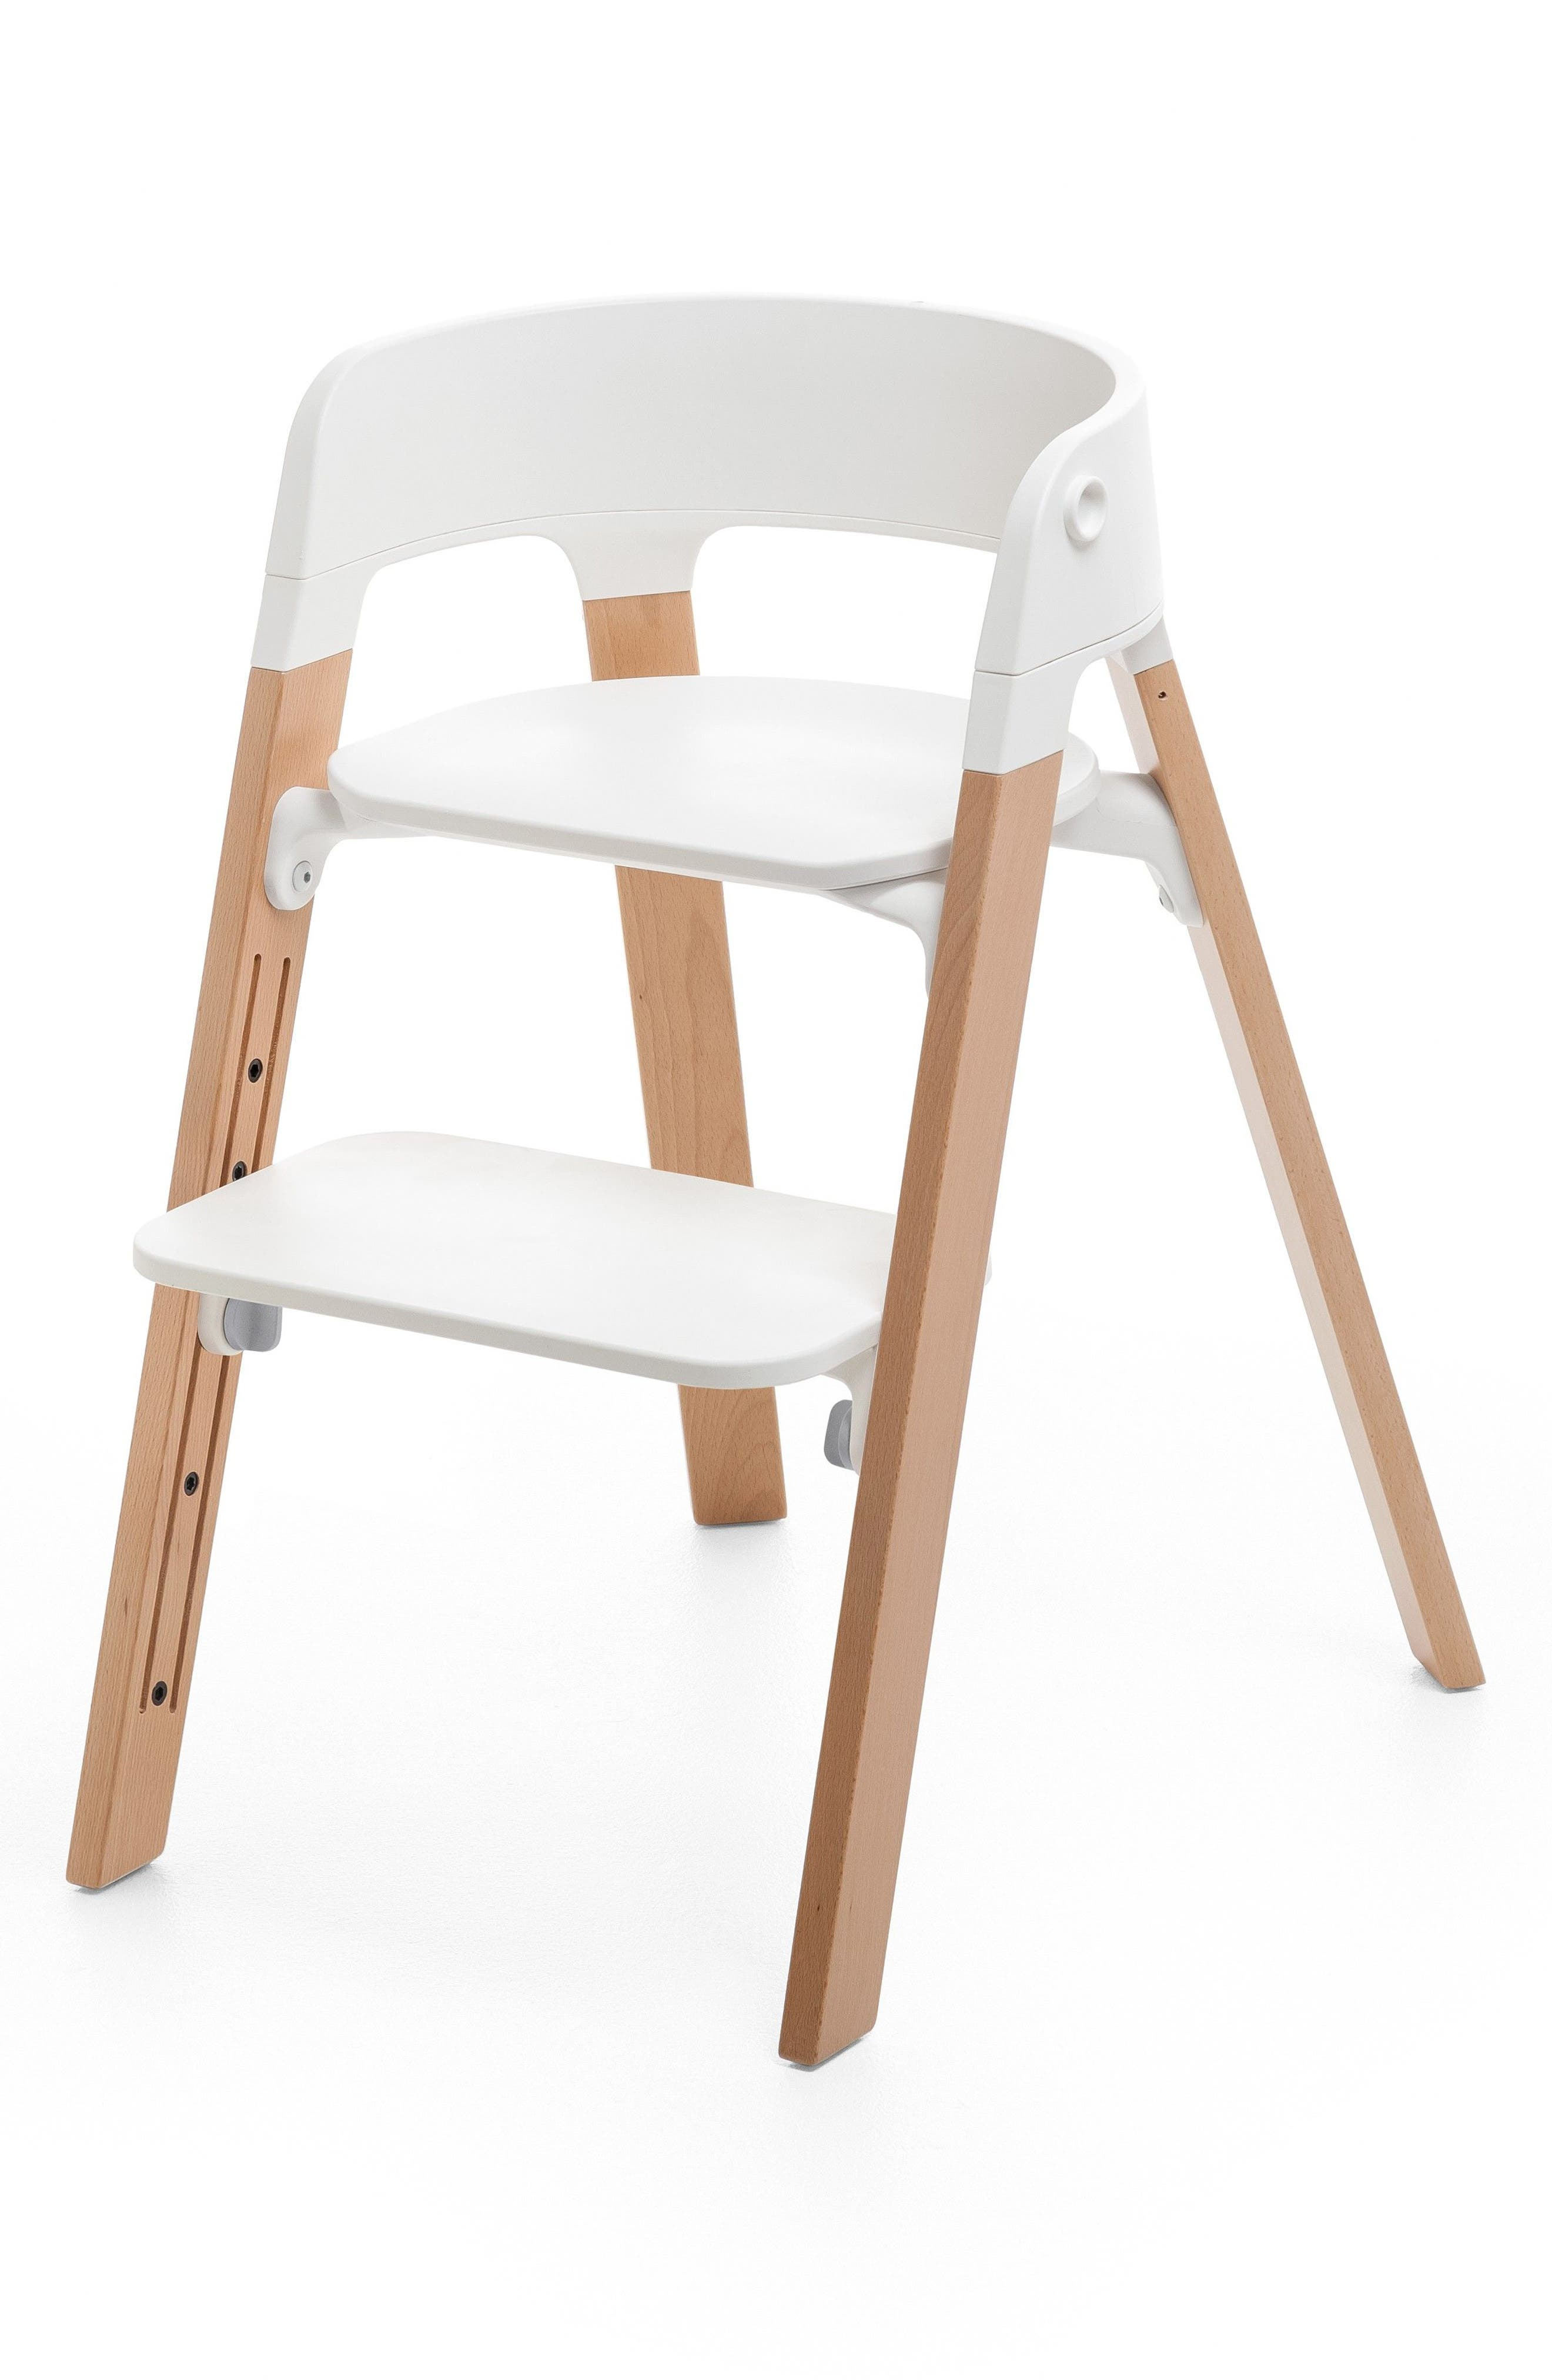 Stokke high chair blue - Stokke High Chair Blue 43